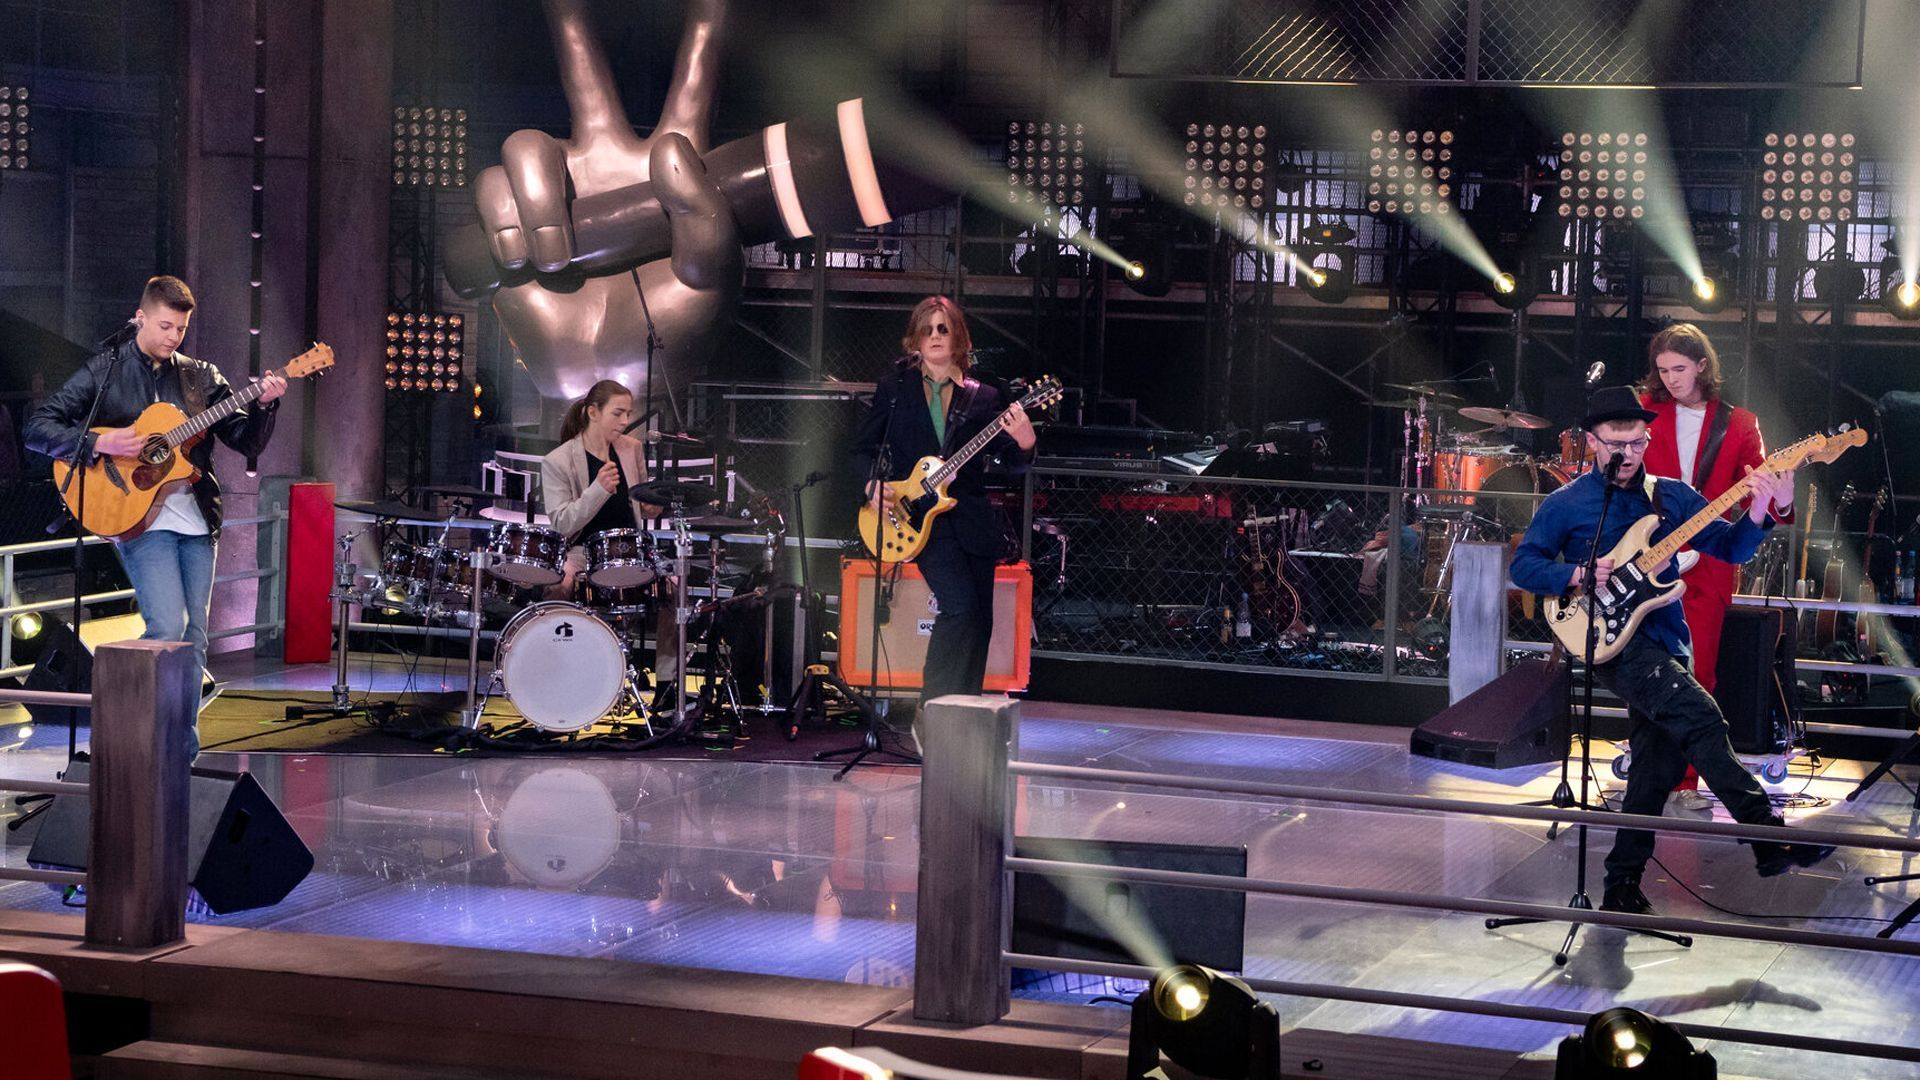 Marko & Batteries of Rock & Joshua - Are You Gonna Go Be My Girl || The Voice Kids: